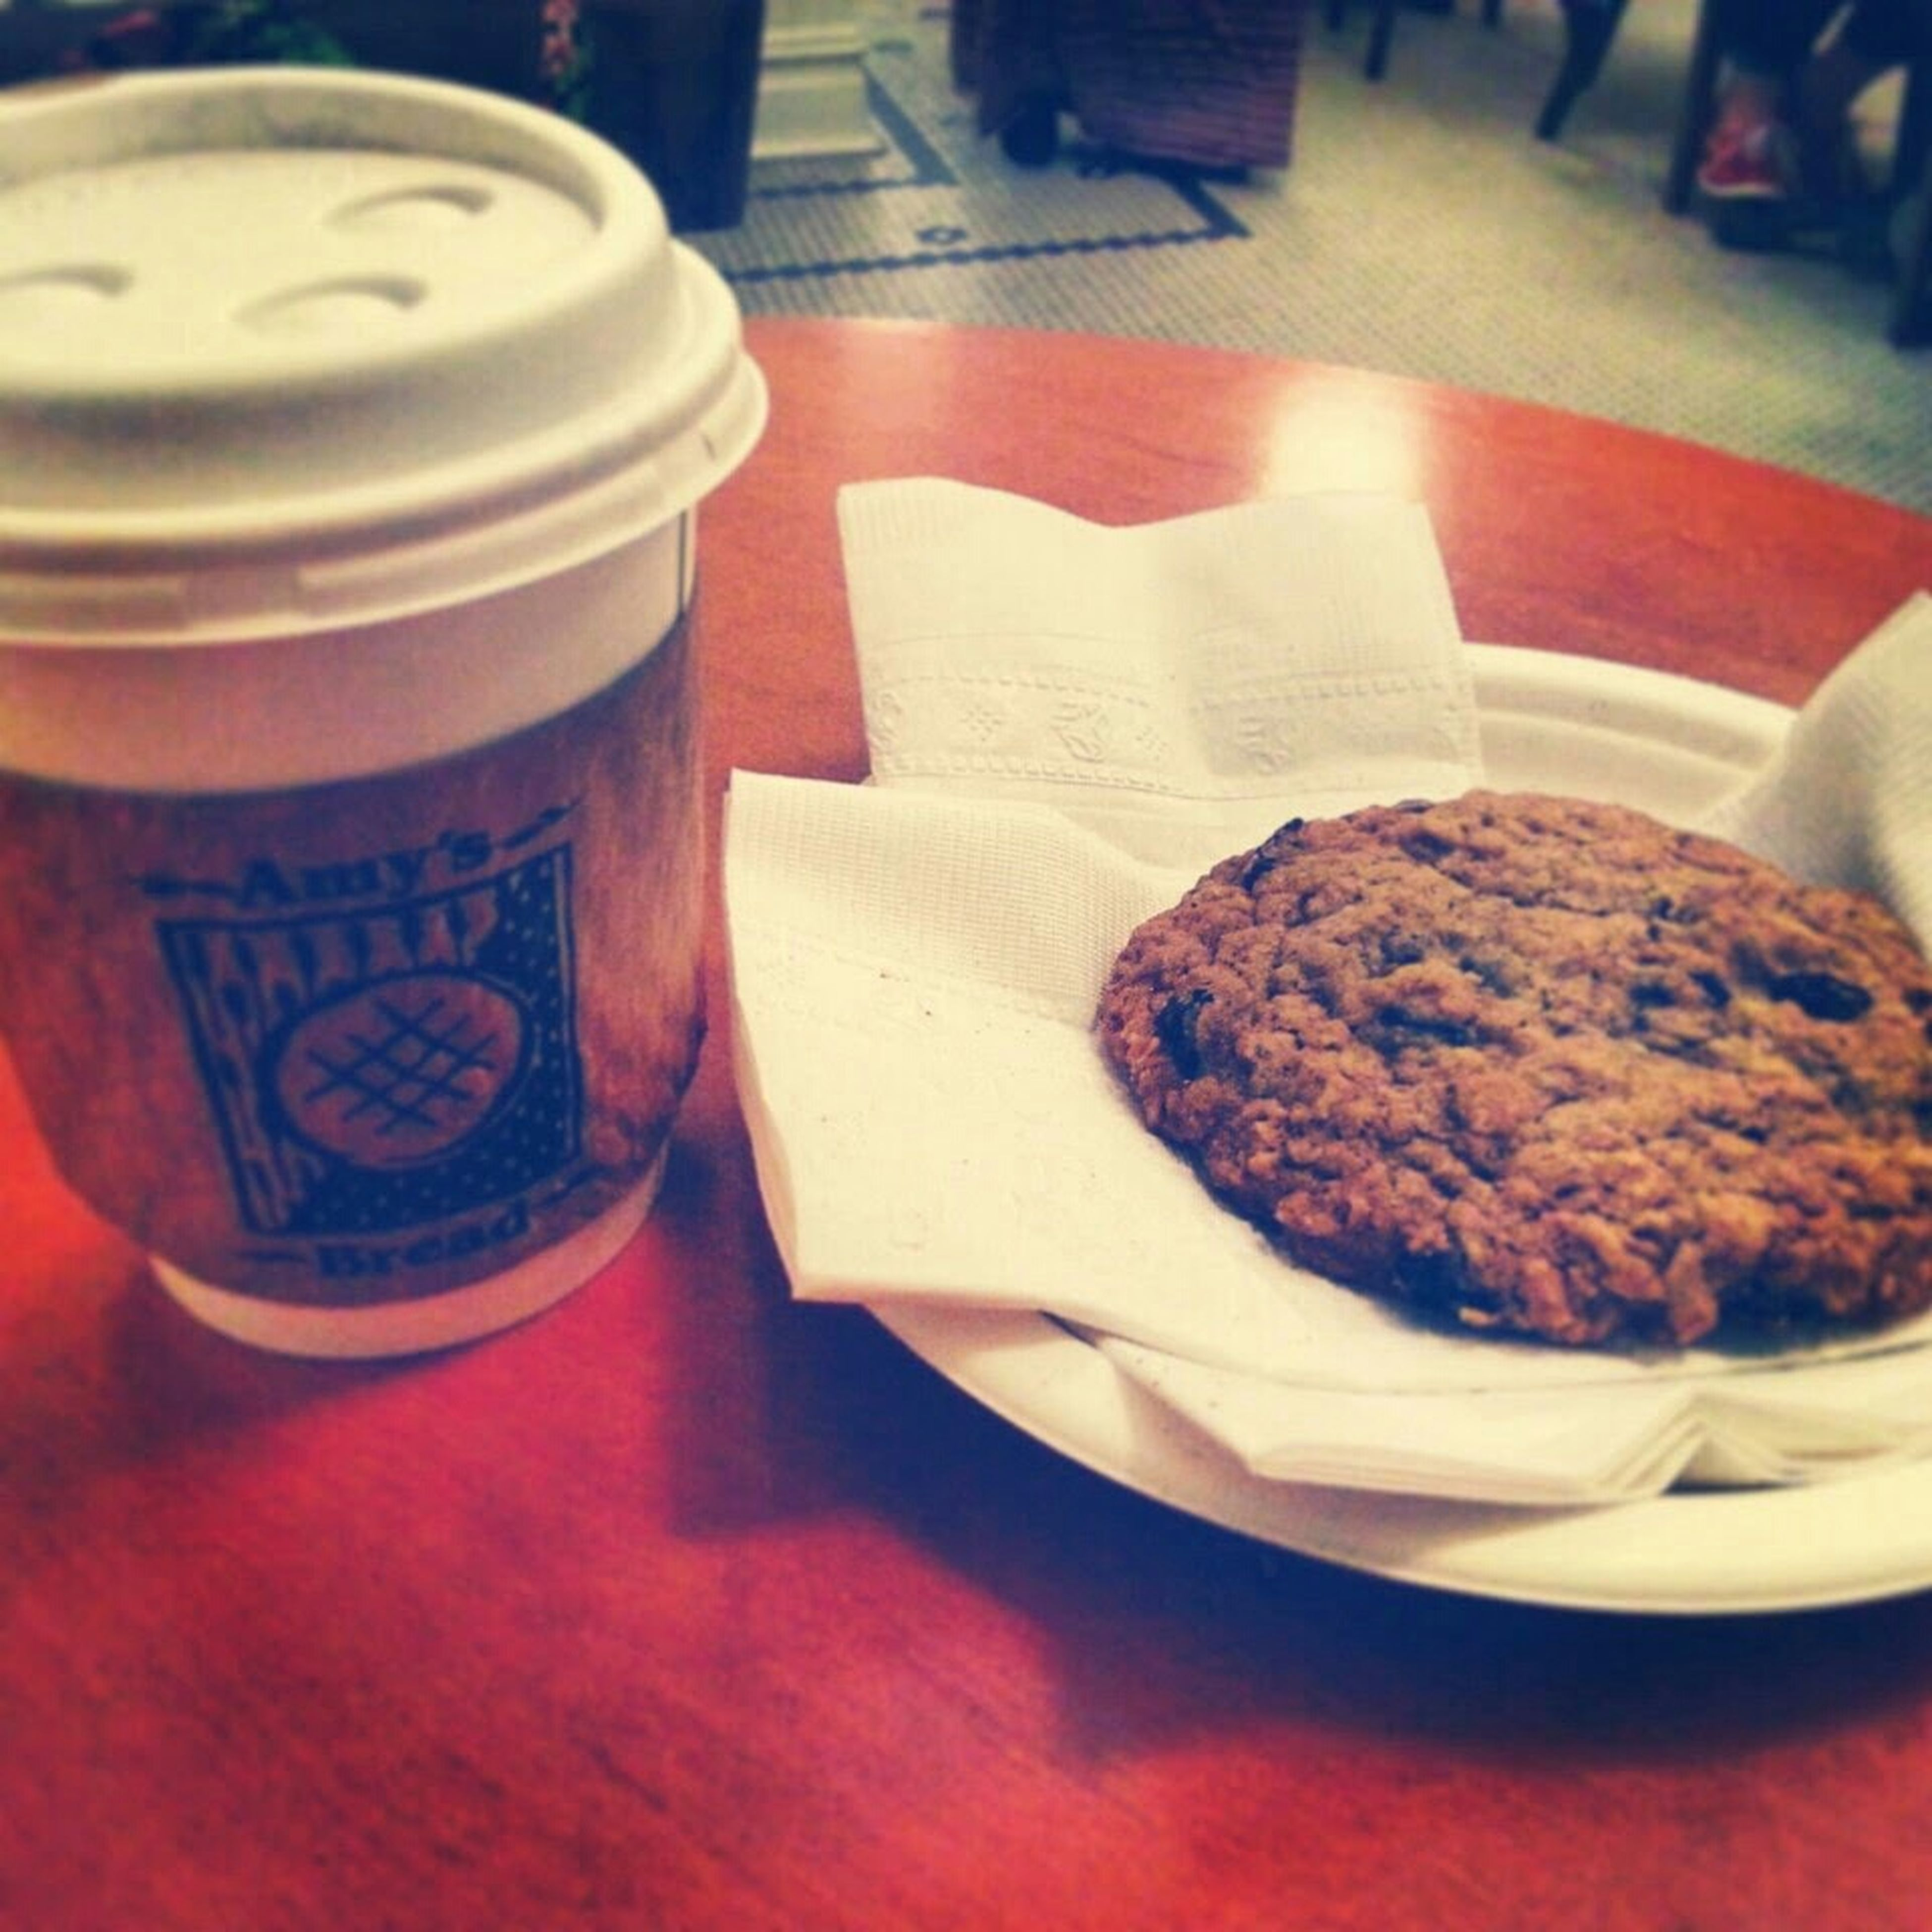 Better Together Amys Bread Coffee Time Coffee Cookie The Foodie - 2015 EyeEm Awards